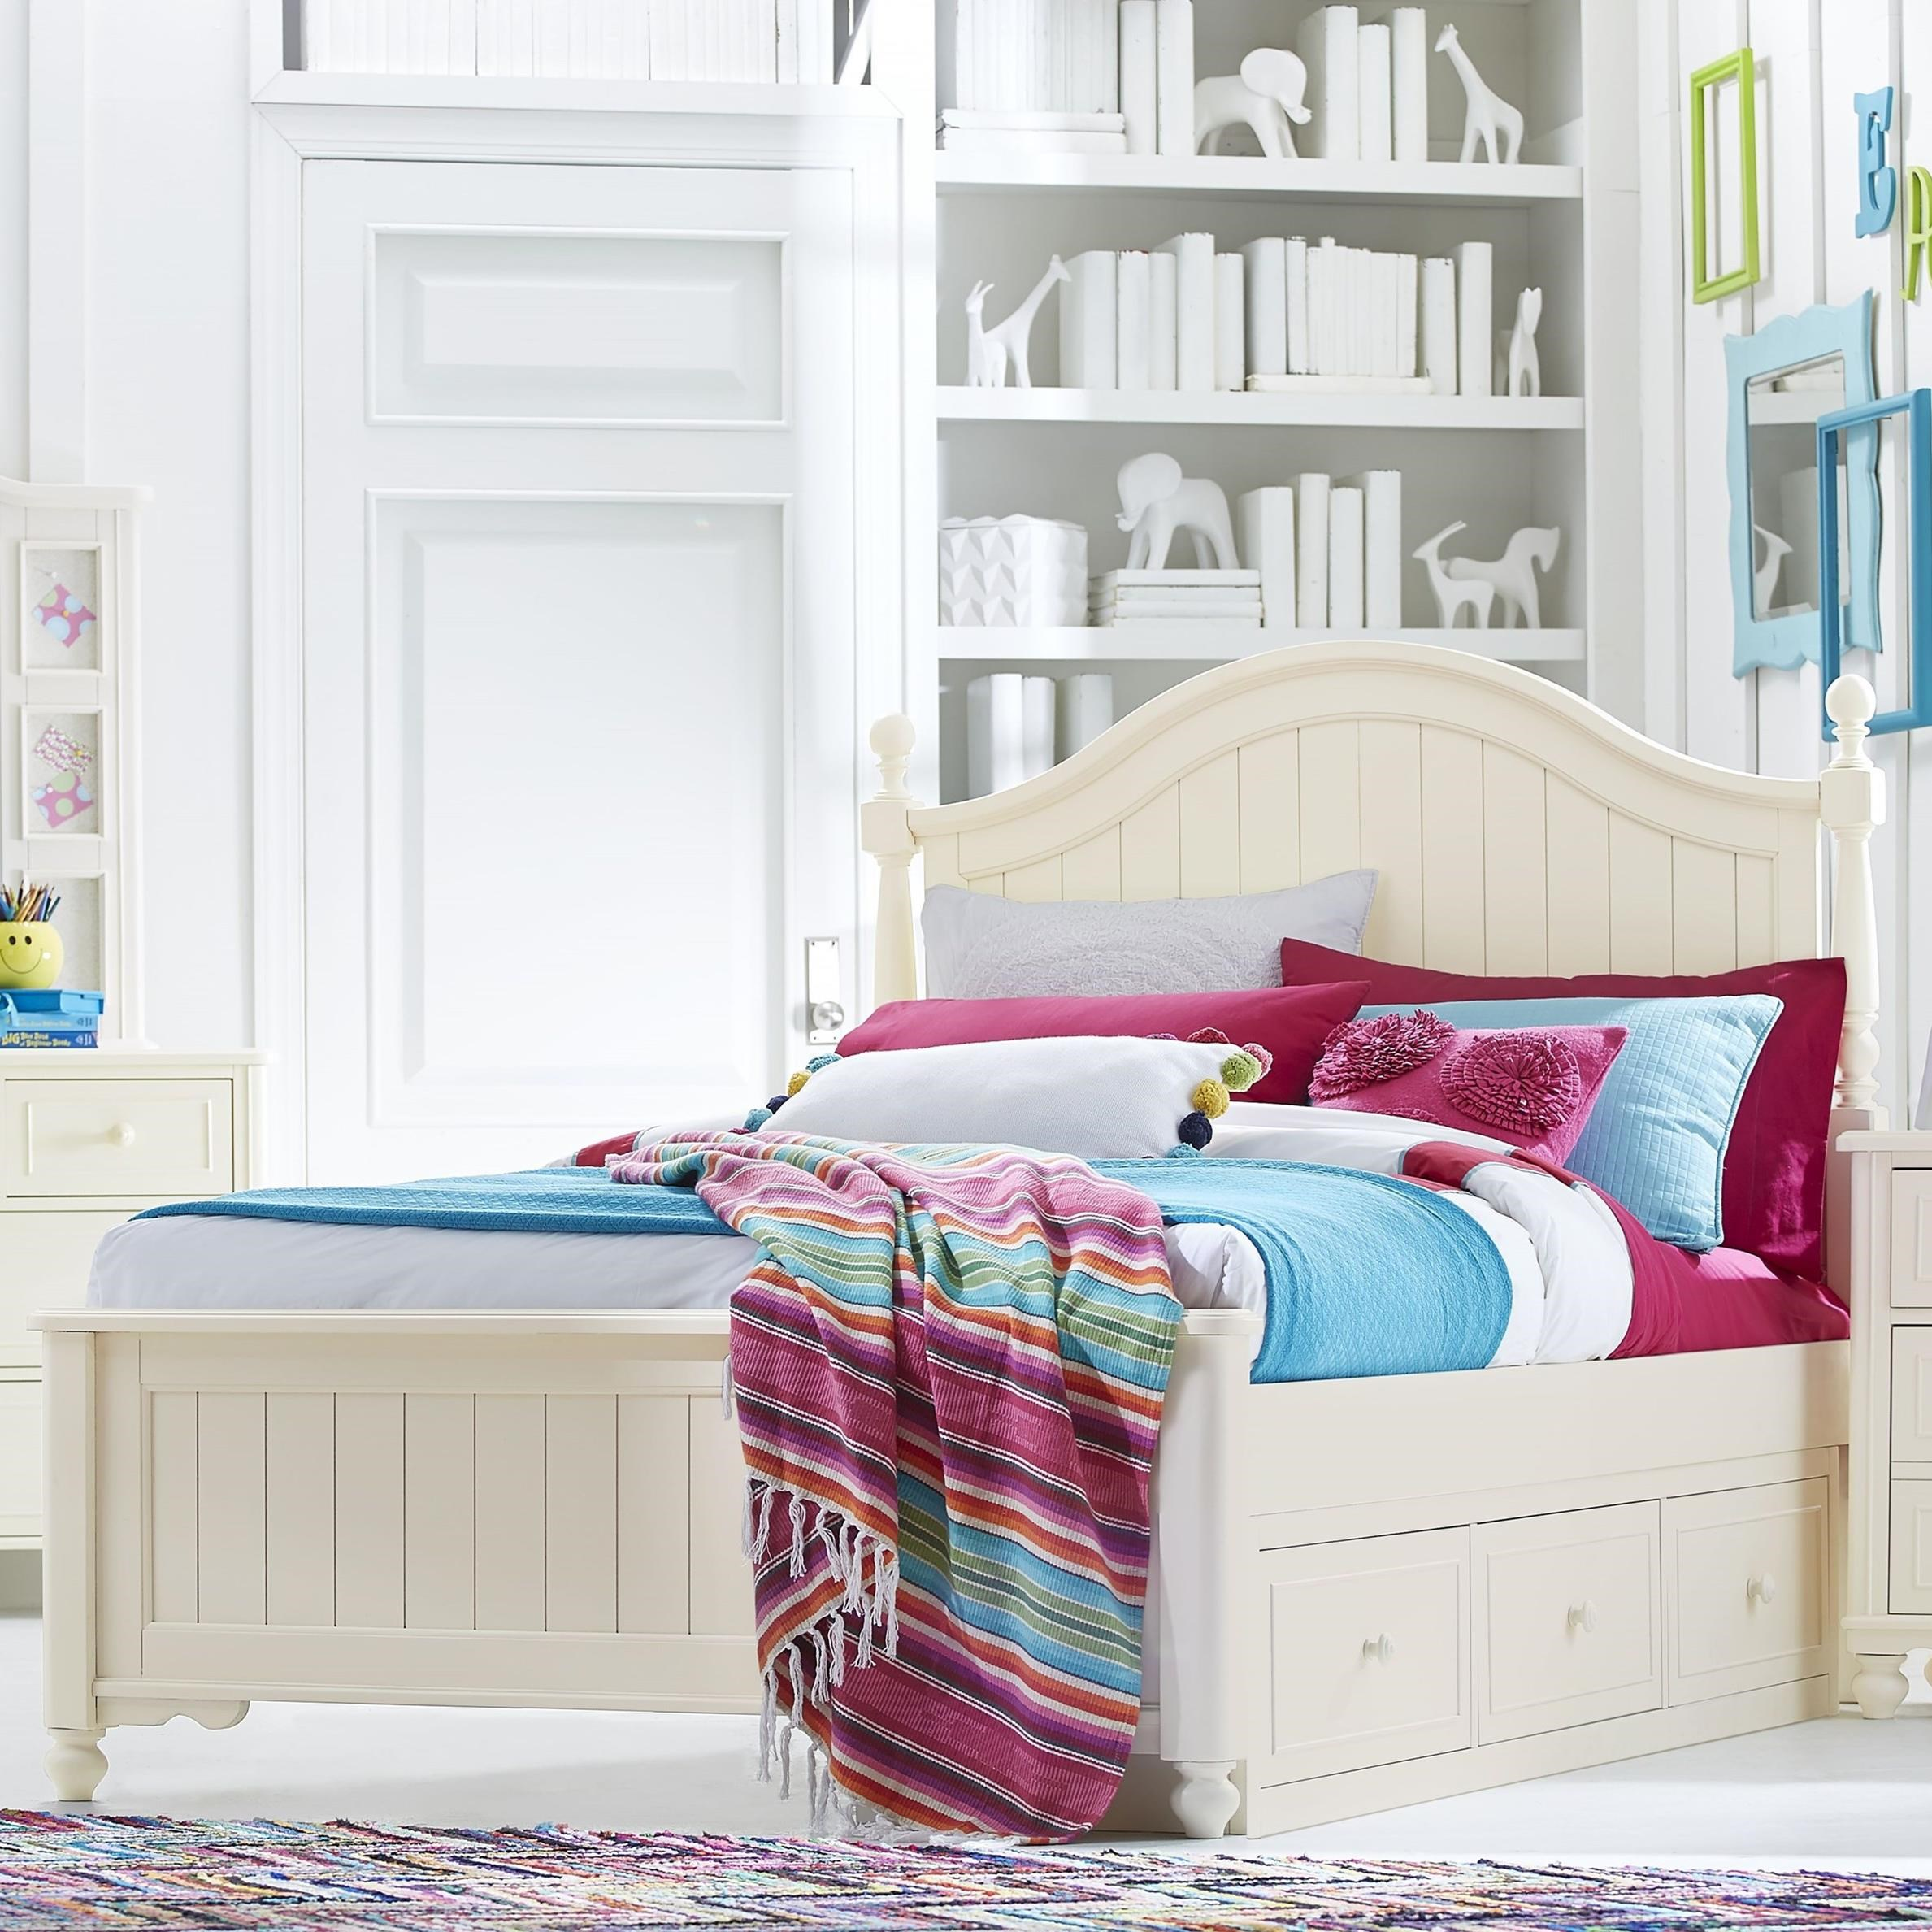 Full Bed with Storage Drawer